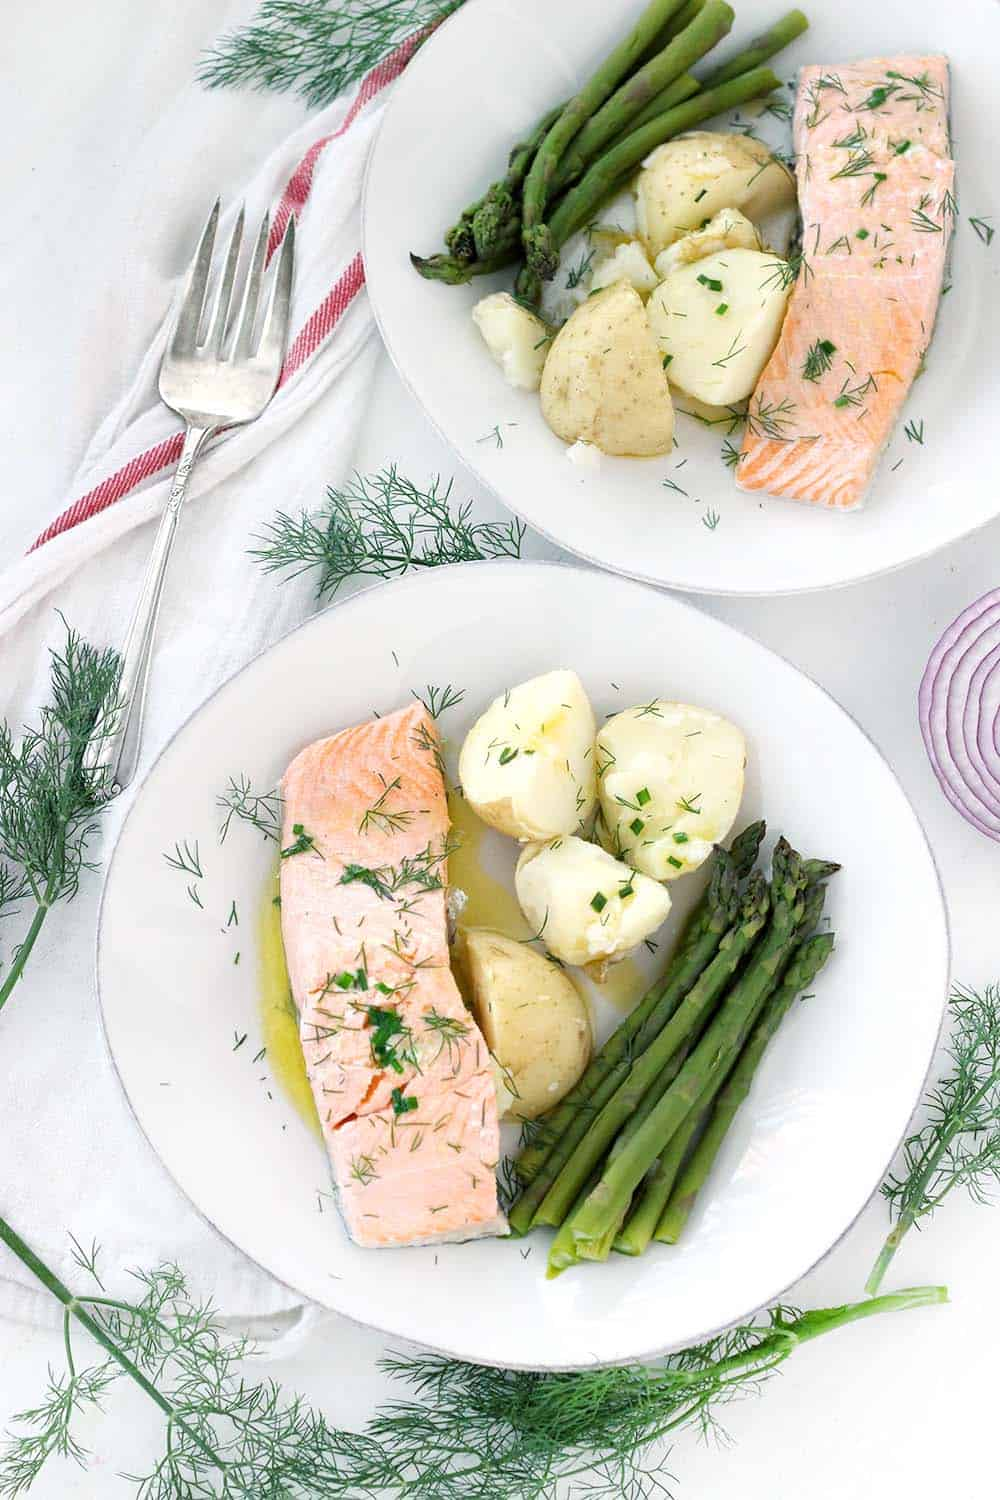 This poached salmon recipe comes out perfectly moist and flaky every time! It's drizzled in a delicious chive butter, takes only 15 minutes, and is a perfect low-carb, keto recipe.